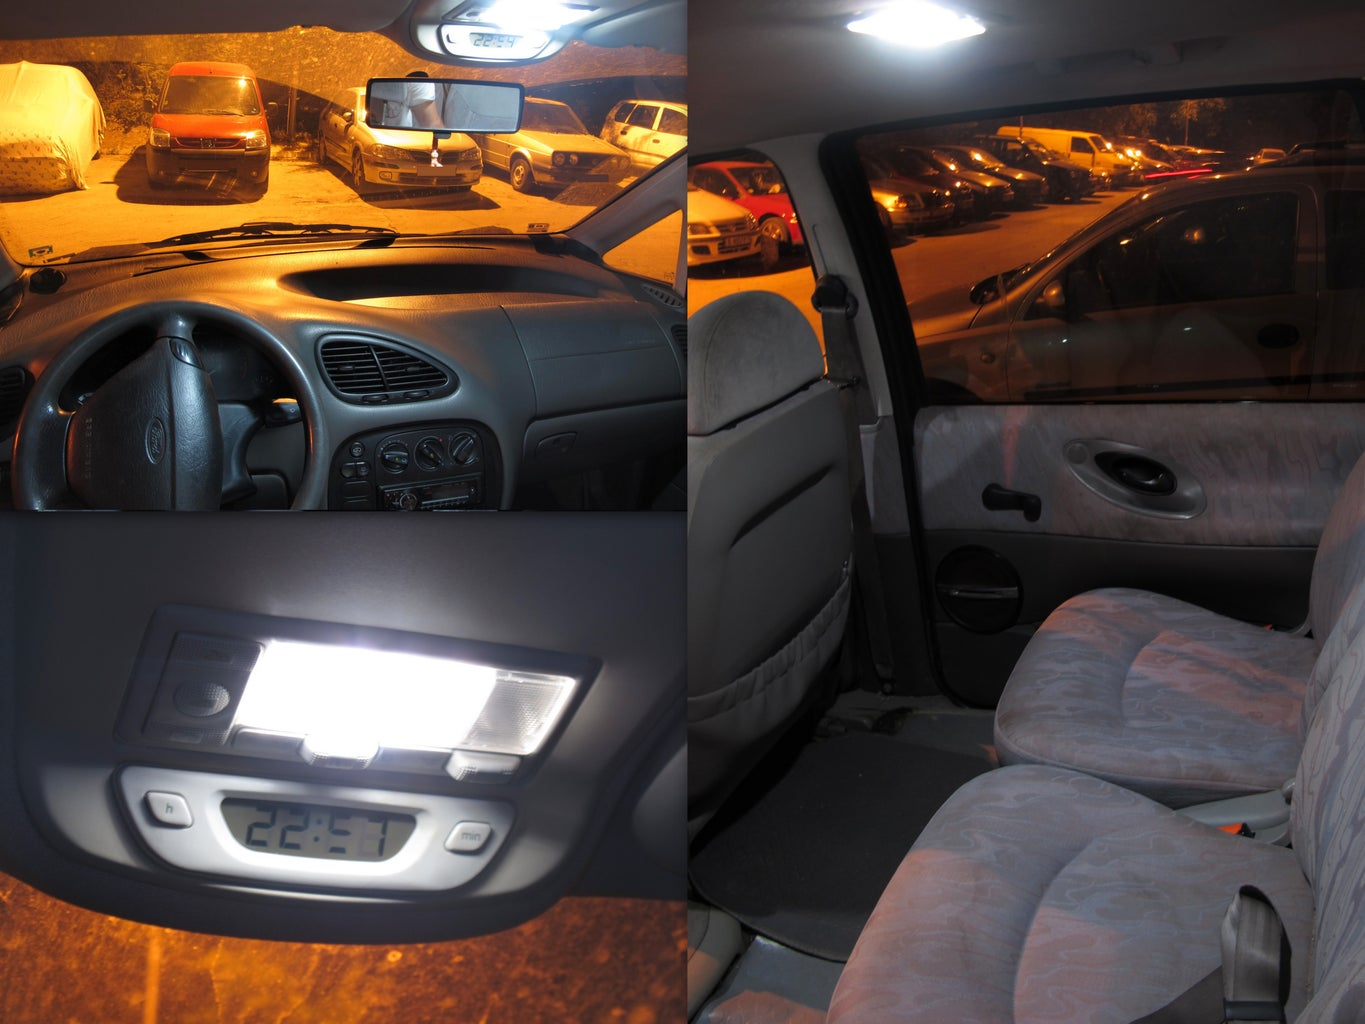 Put the LED Lights in the Car and Enjoy